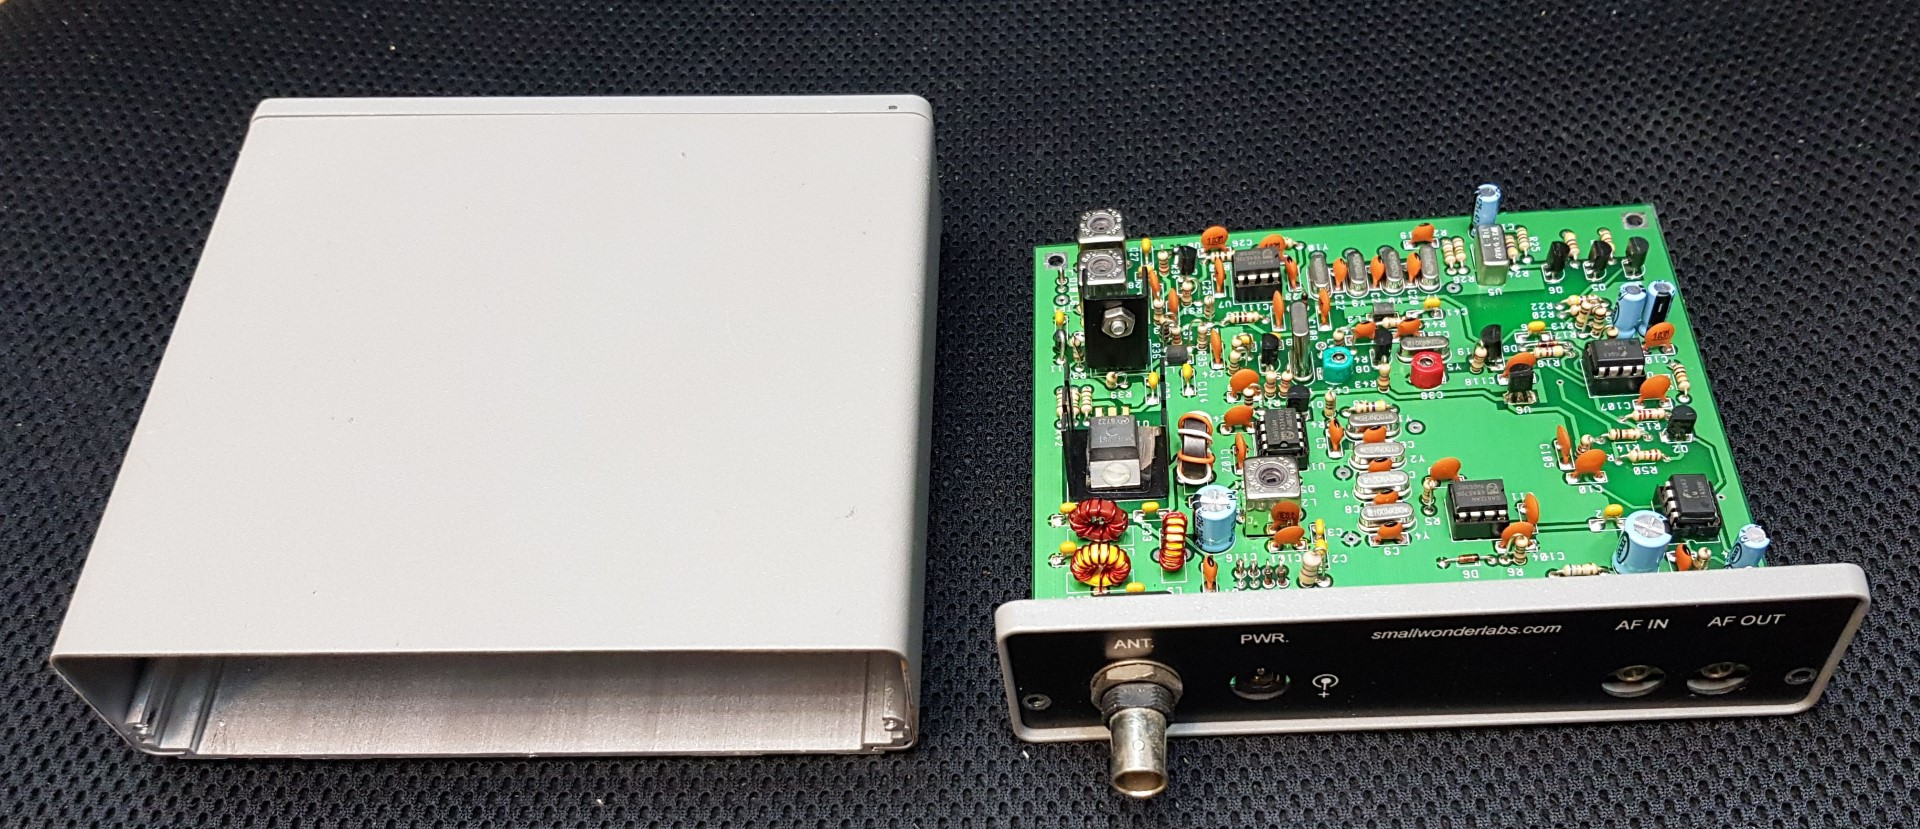 Small Wonder Labs PSK-20 (built-kit) / Modded for 20m WSPR (FT-8 compatible)